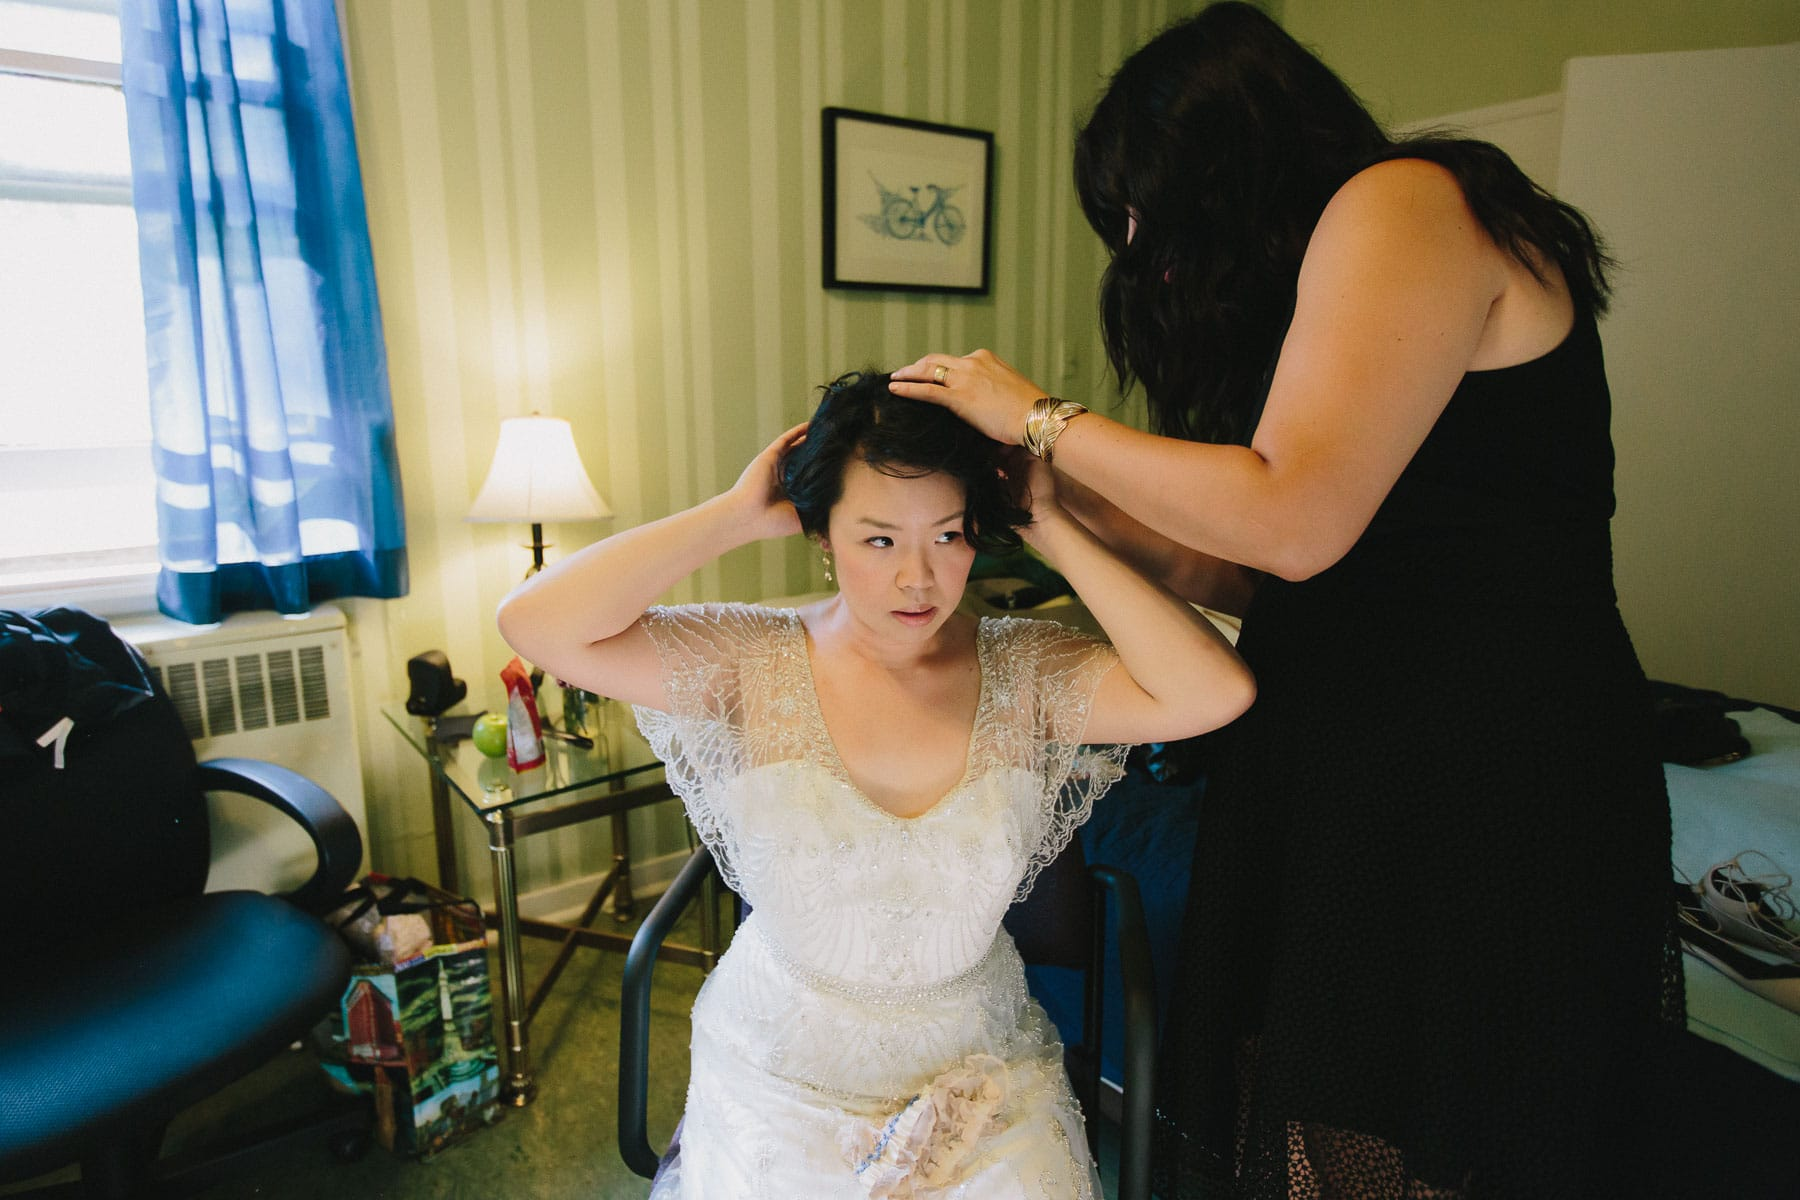 Bride's hair is done by friend, Artscape, Toronto Island wedding